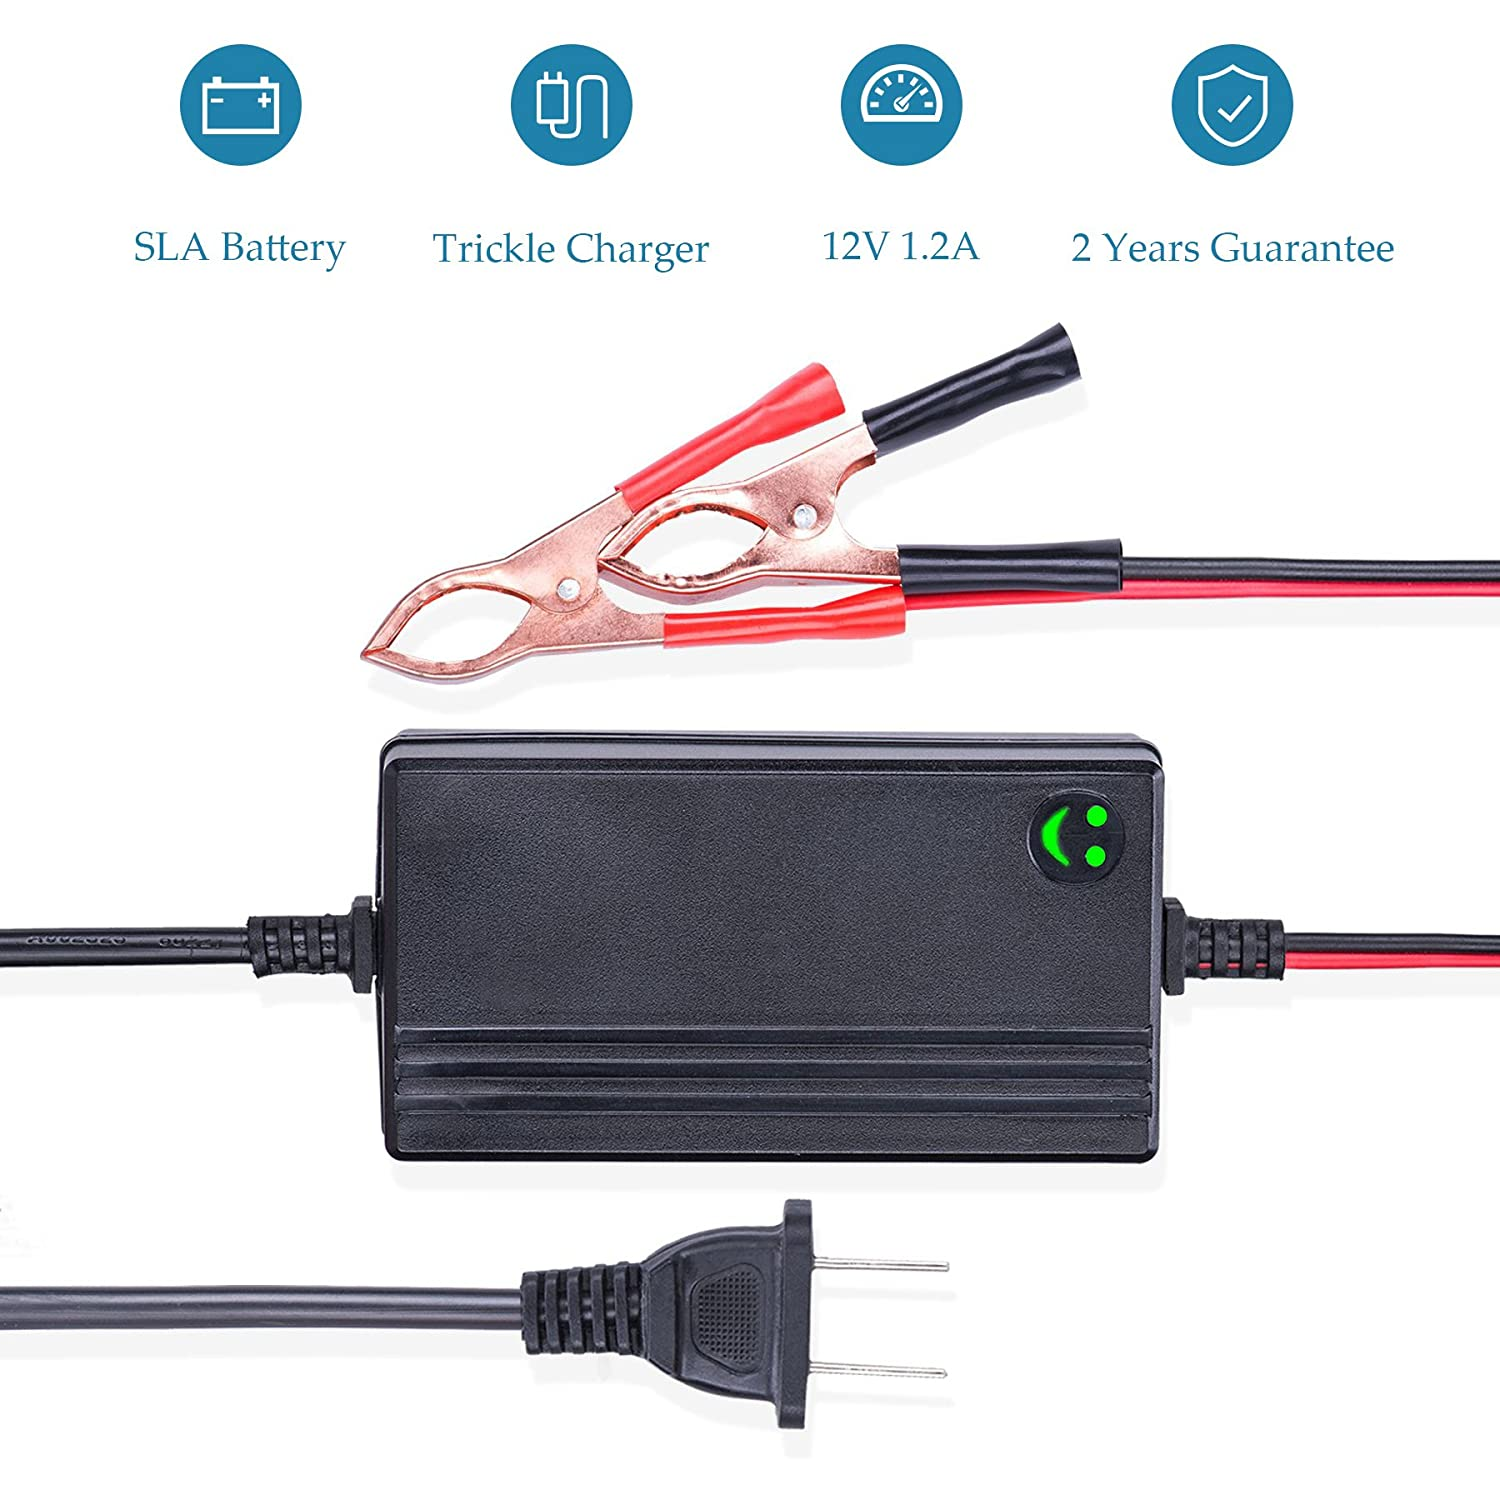 12v To 148v Automatic Lead Acid Battery Charger Sla Gel Circuit With Monitor Meter Function Maintainer 12a Trickle For Car Truck Boat Motorcycle Rv Lawn Tractor Automotive